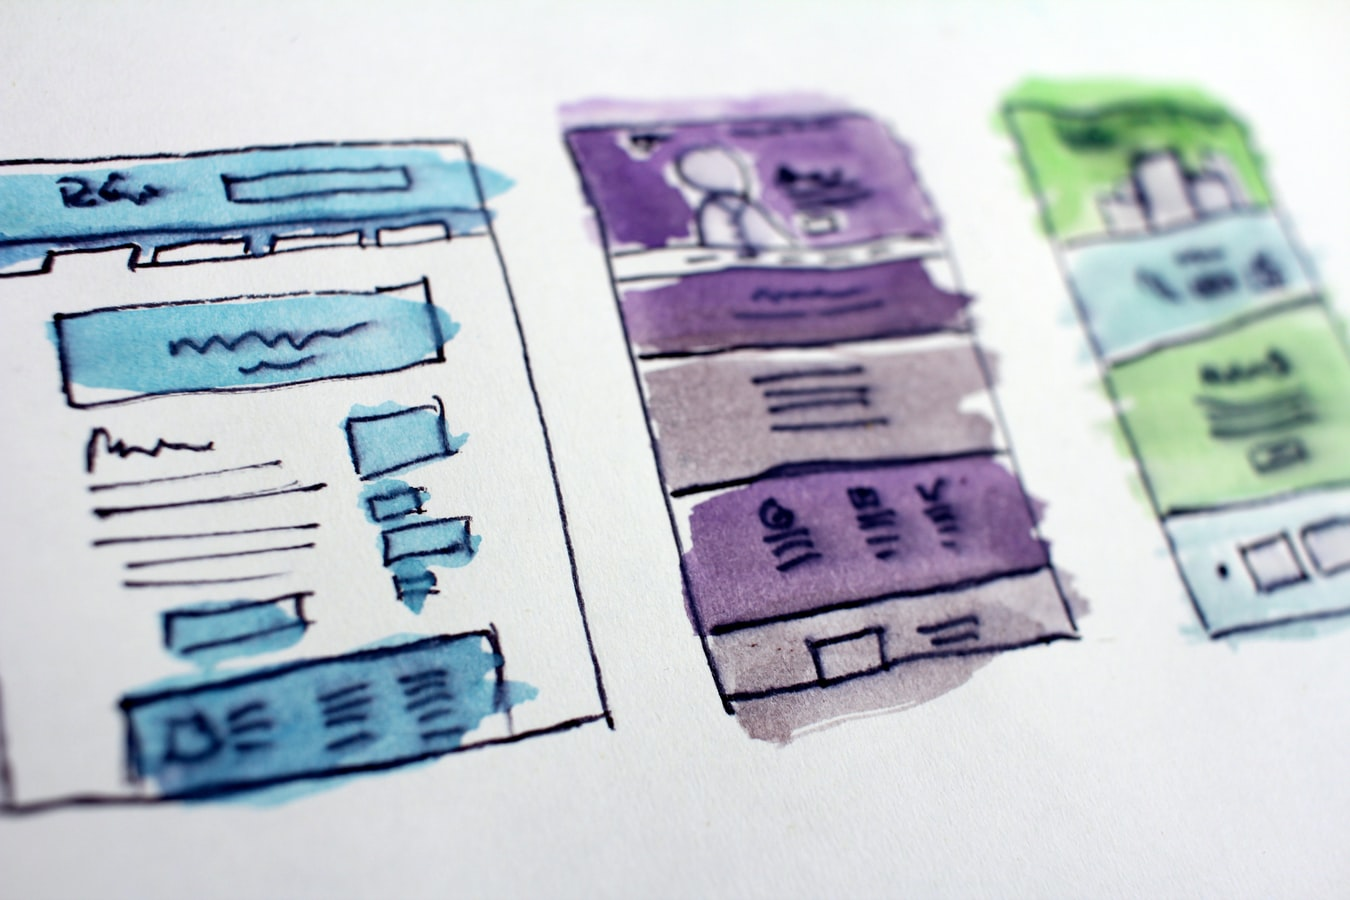 Get a new website fast by designing how you want it to look like. All you need is a pen, a paper and a good sense of what your users would like.